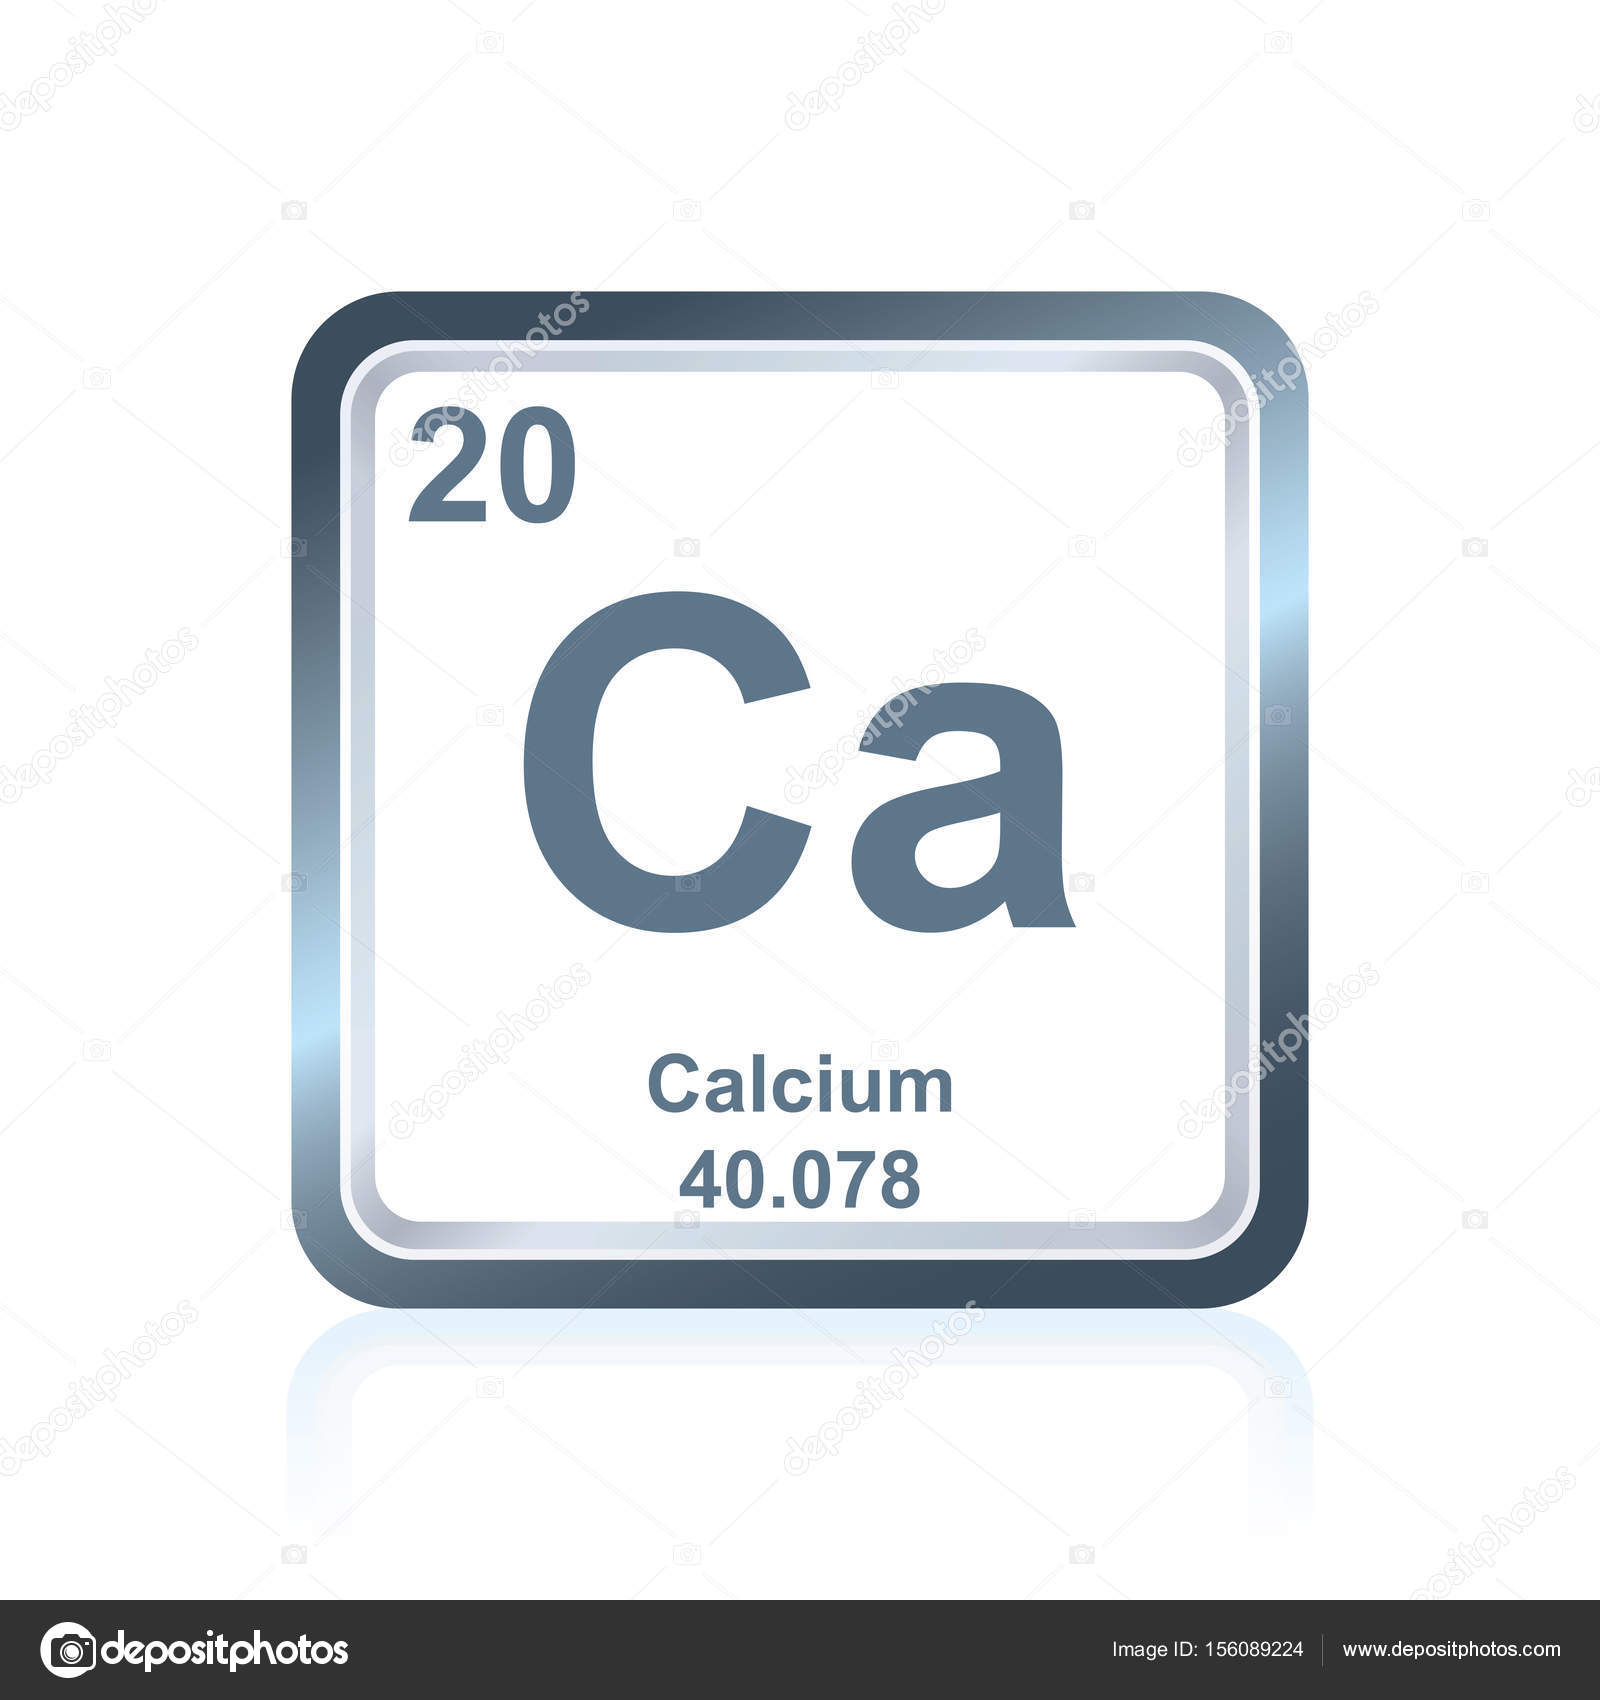 Calcium element symbol gallery symbol and sign ideas chemical element calcium from the periodic table stock vector symbol of chemical element calcium as seen biocorpaavc